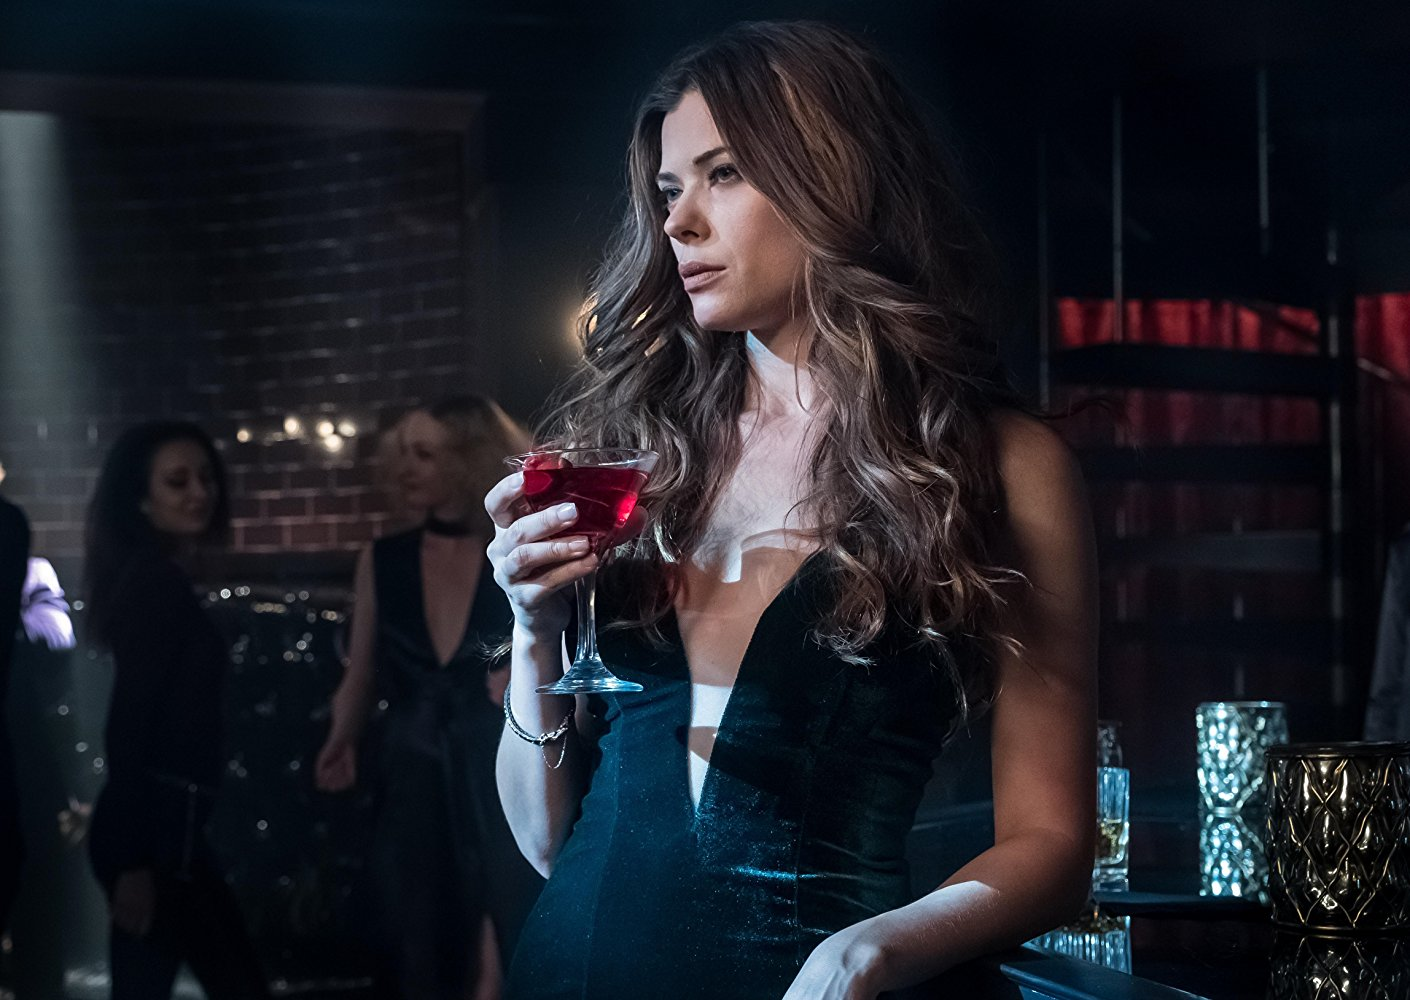 Still of Peyton List as Ivy Pepper at the Siren's club.